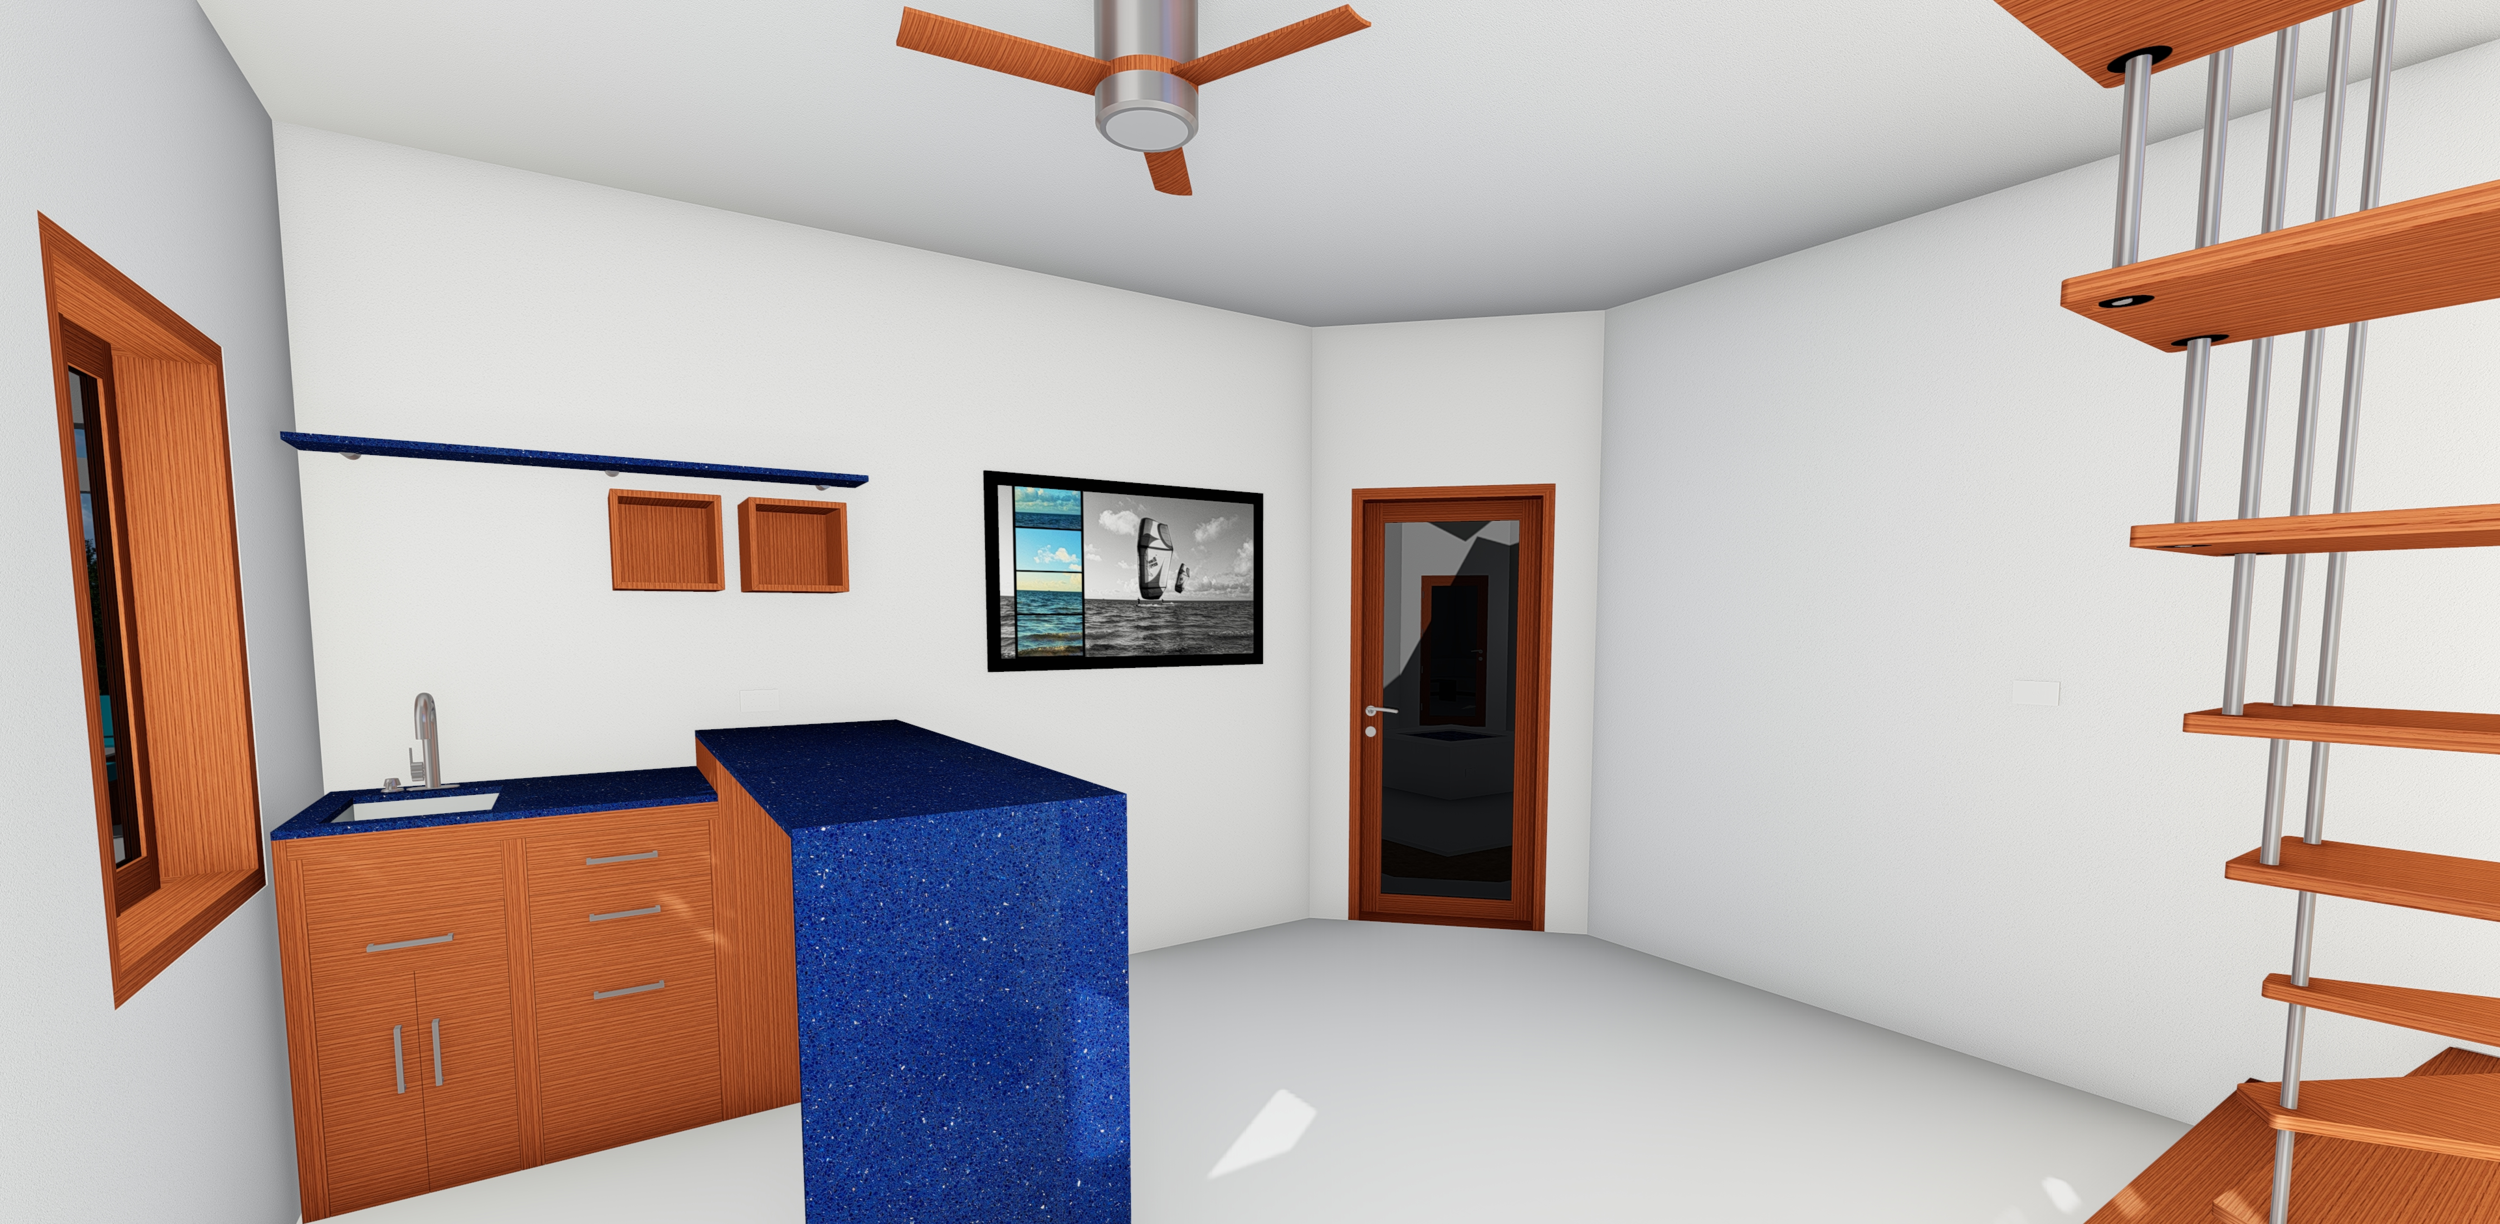 Holiday Home - Tower Inside (Day) 2 - Print Size.png